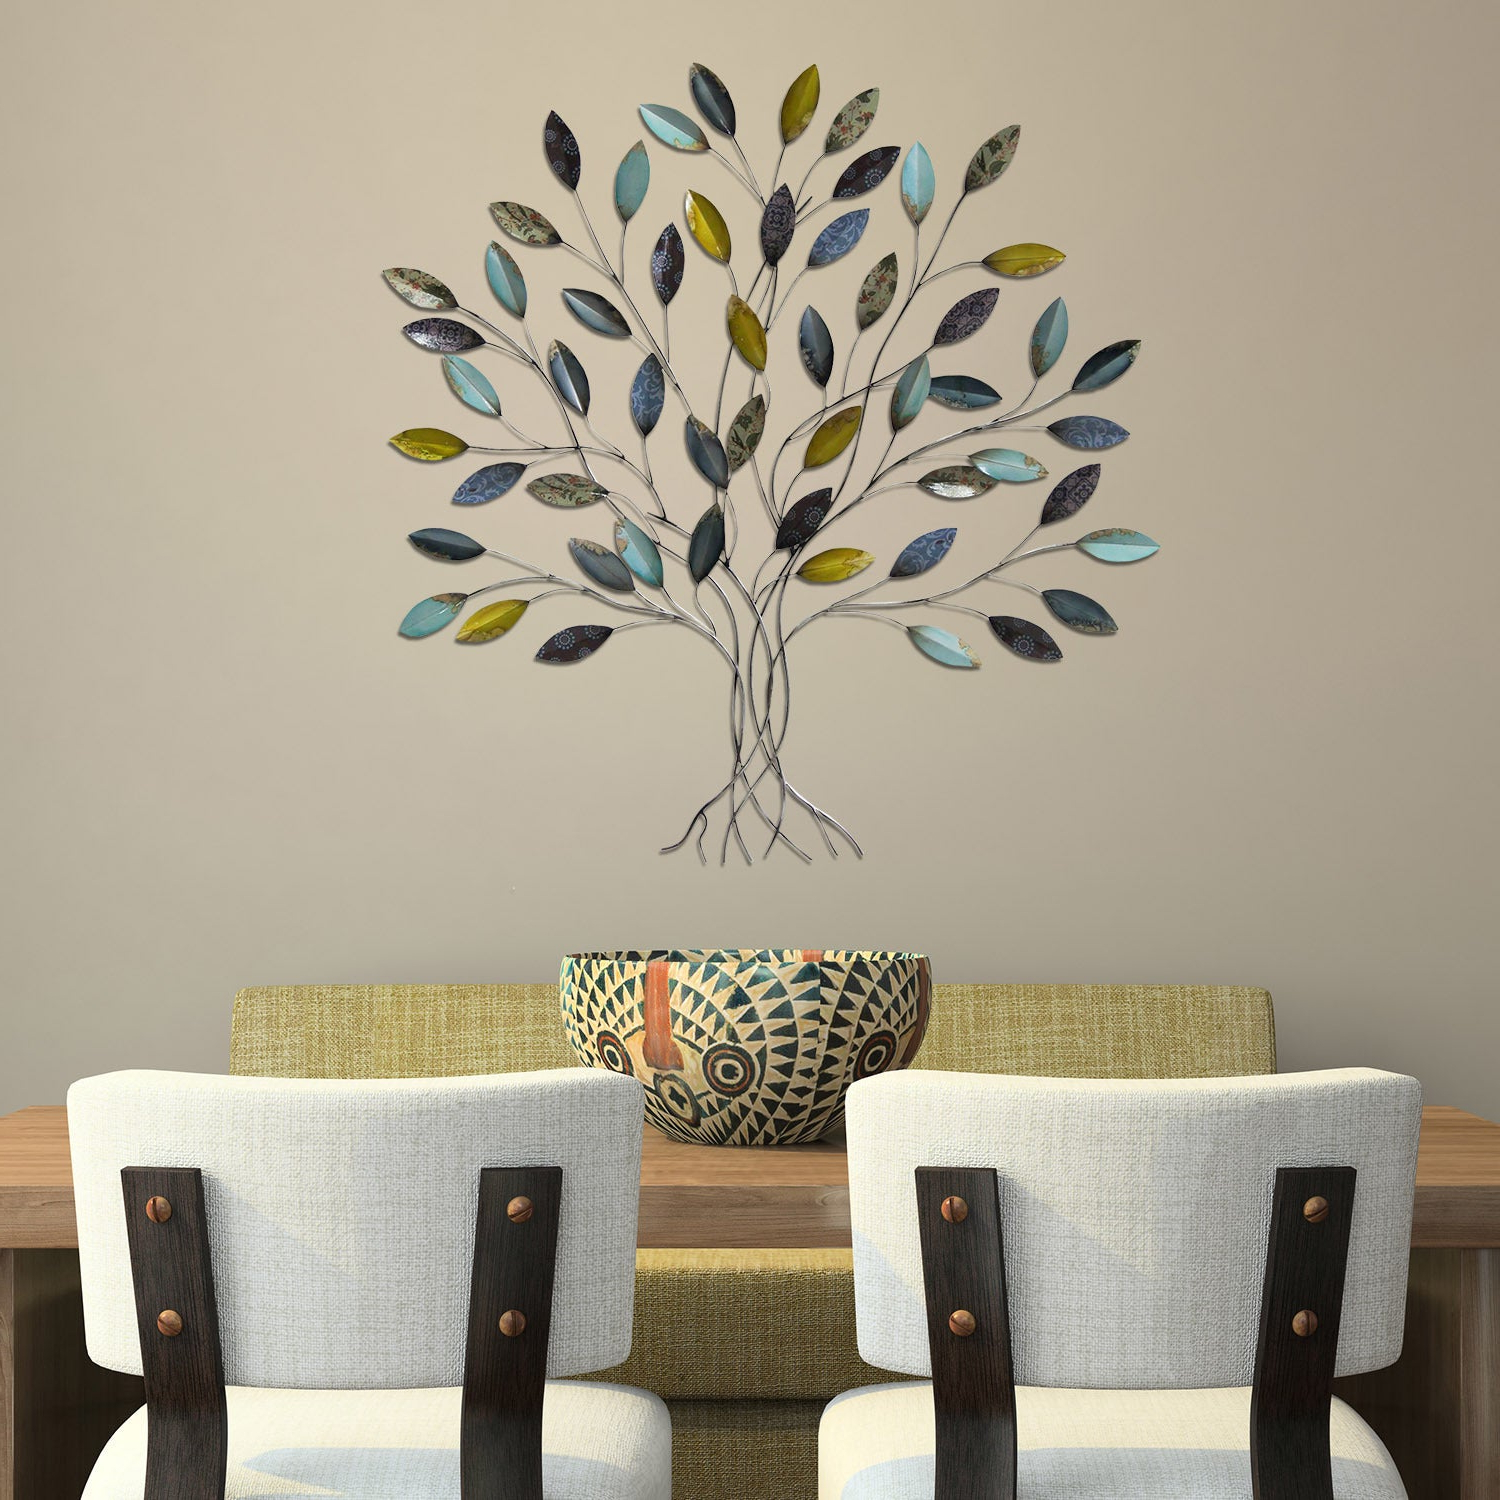 Shop Stratton Home Decor Tree Wall Decor – Free Shipping Today Intended For Newest Tree Wall Decor (View 12 of 20)